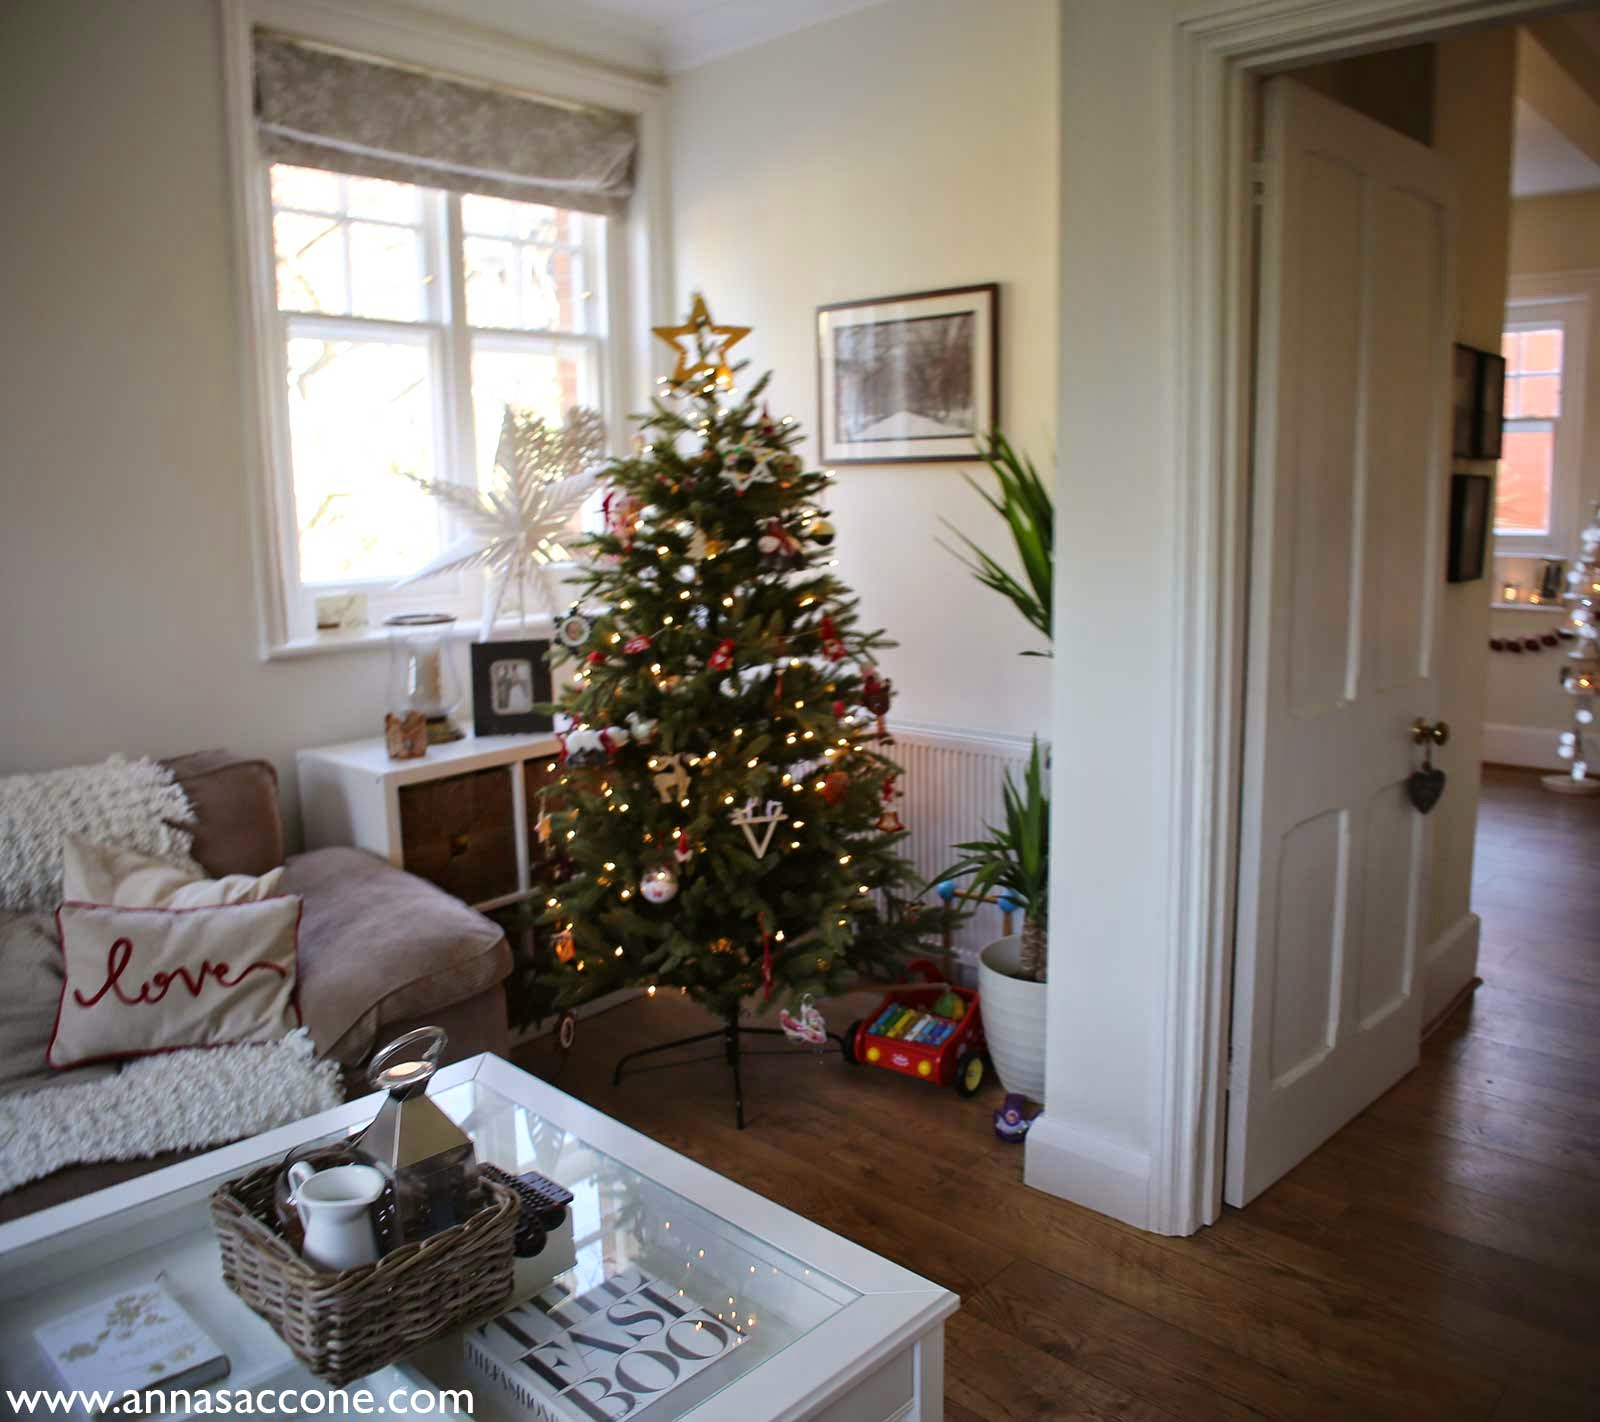 How to decorate my living room for christmas - My Little Tree Lantern Which I Love So Much I Decorated It With Pearl Battery Operated Lights From B Q Our Living Room